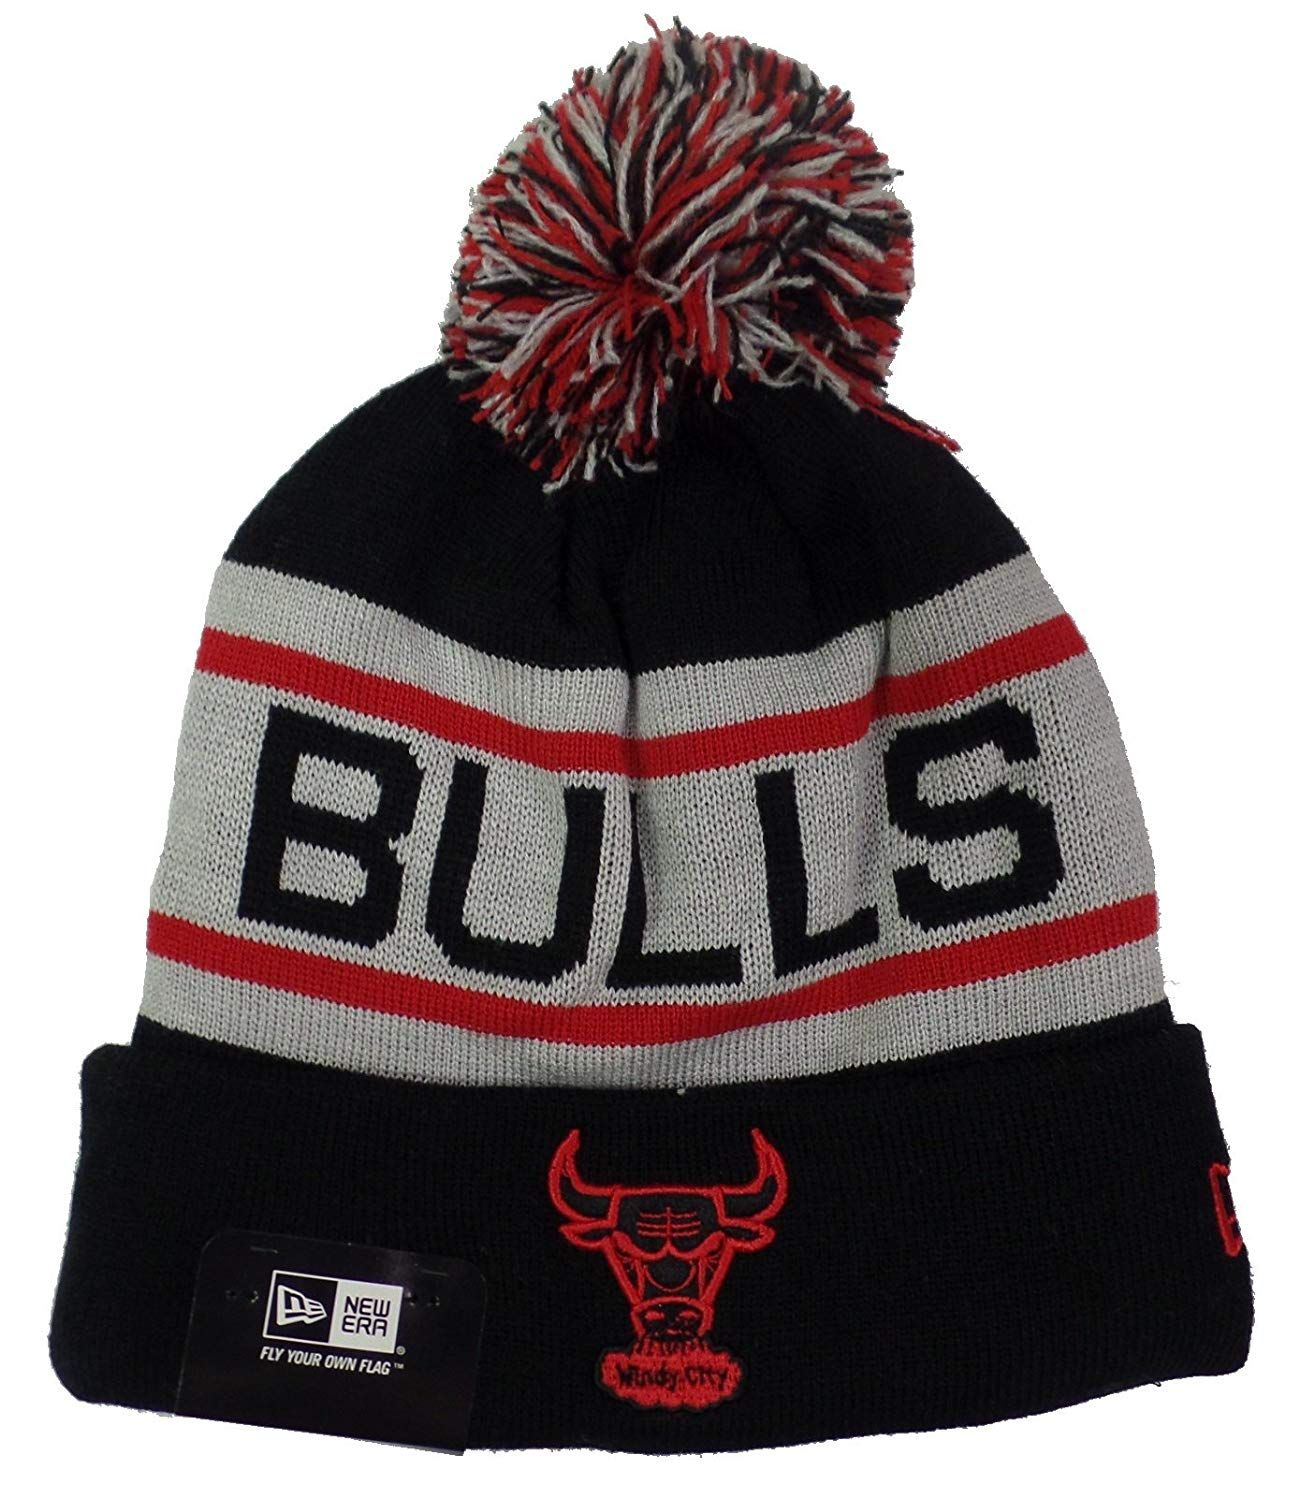 buy popular a46a9 9b1c4 Chicago Bulls Black Biggest Fan Cuffed Pom Knit Beanie Hat,  14.99